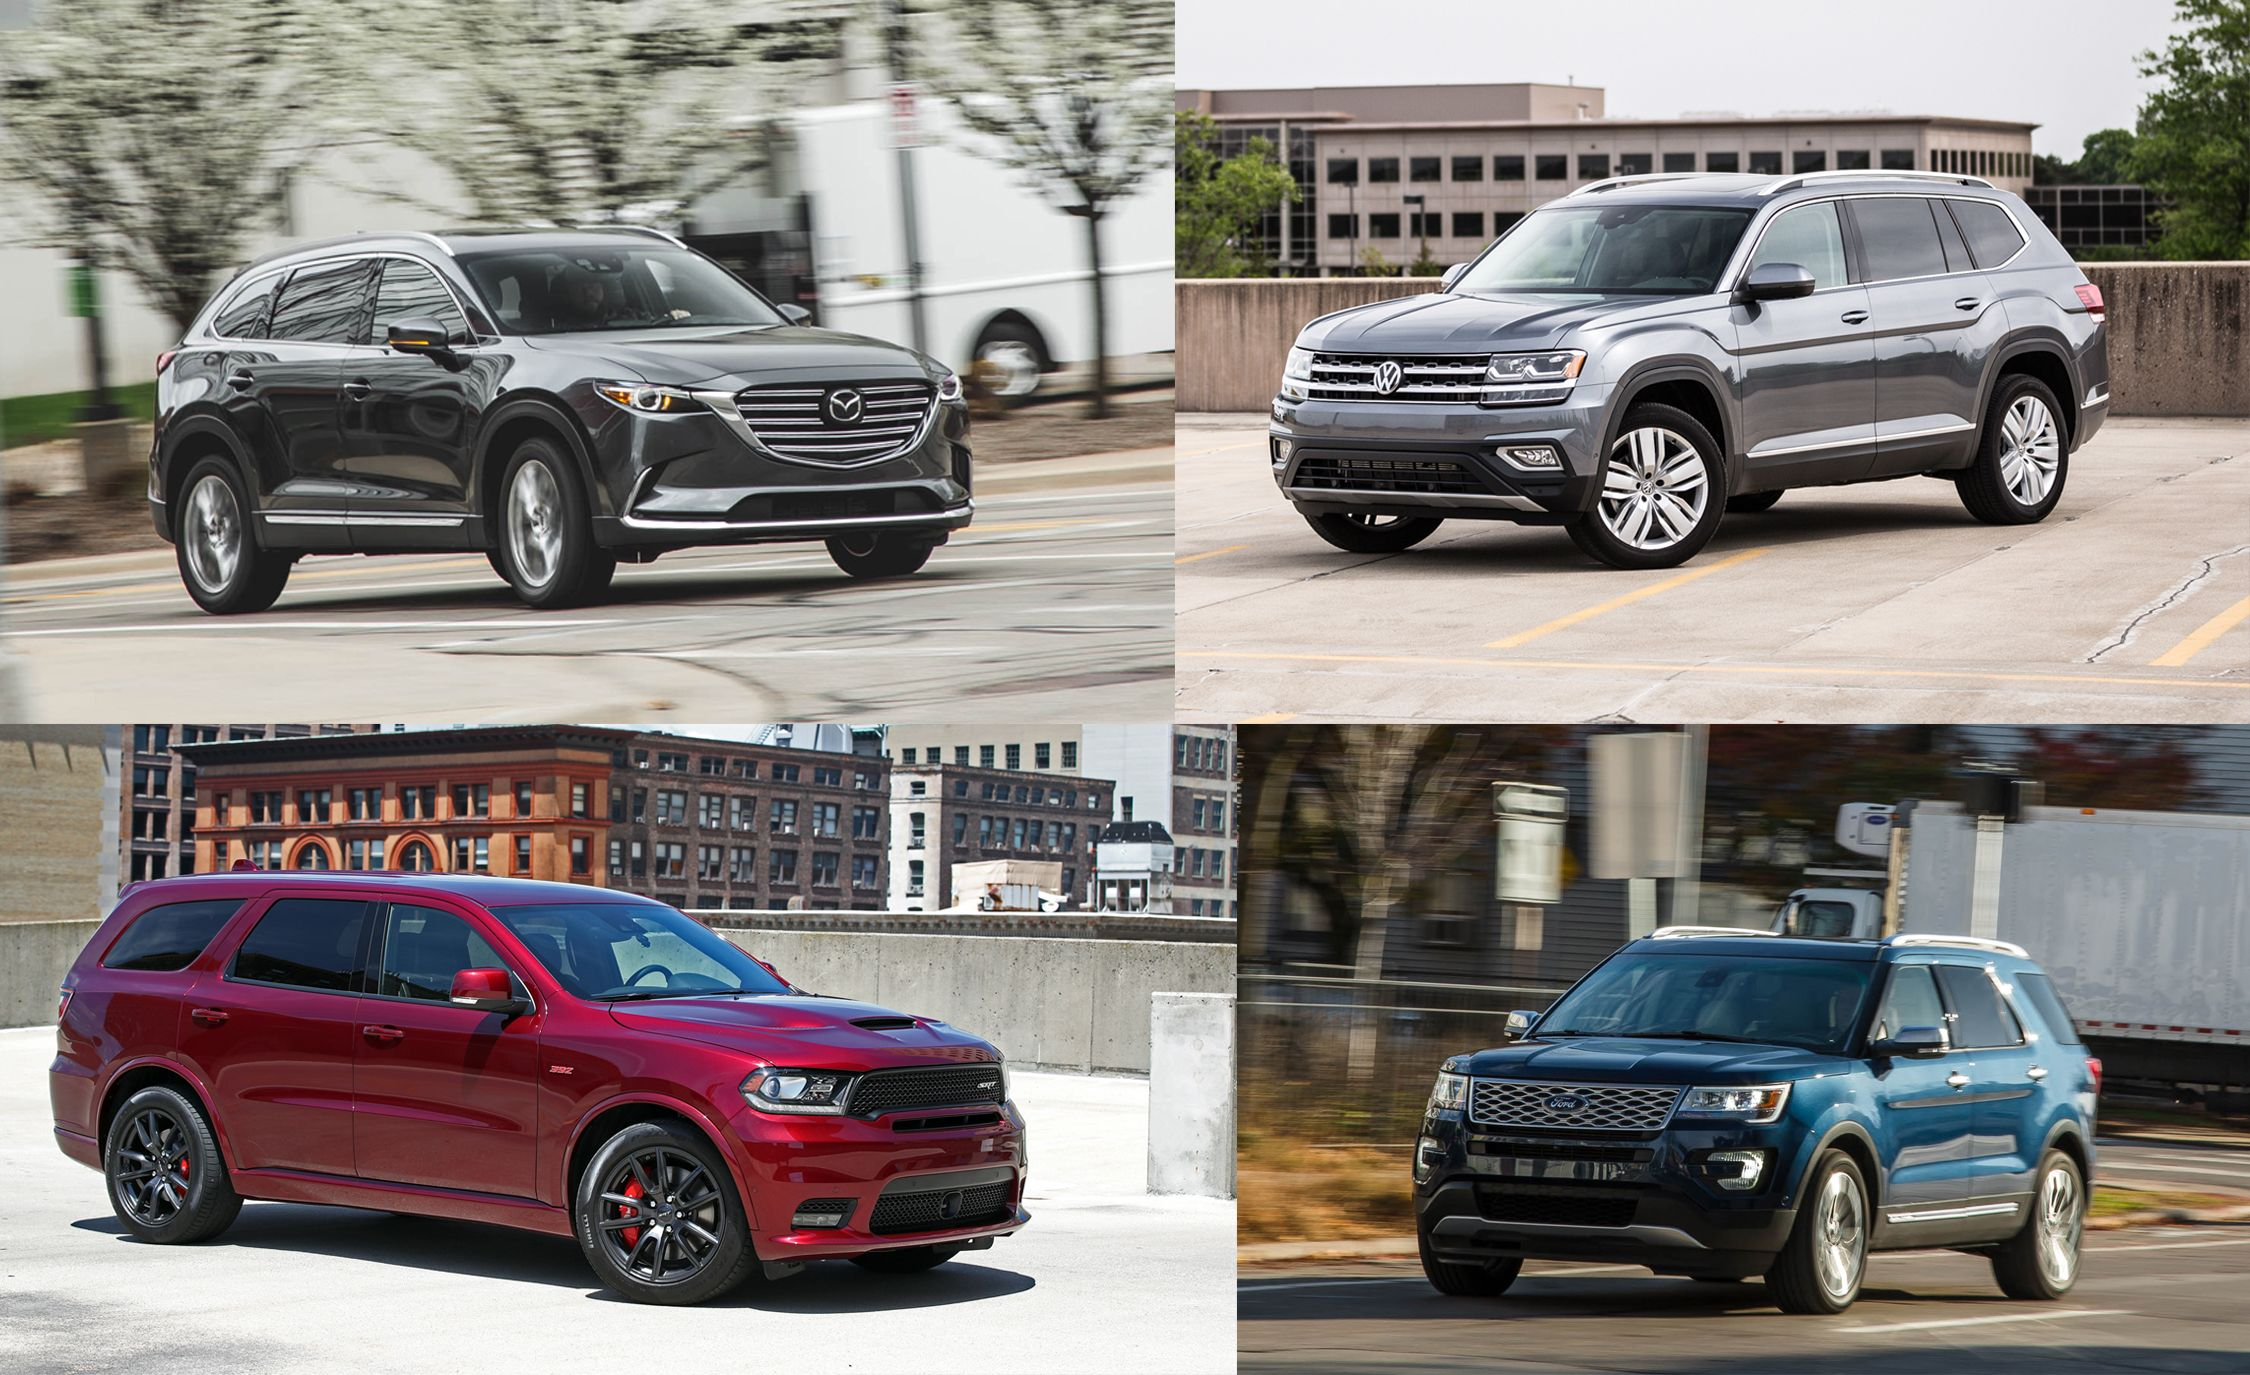 Triplicate Three Row Mid Size Crossovers and SUVs Ranked from Worst